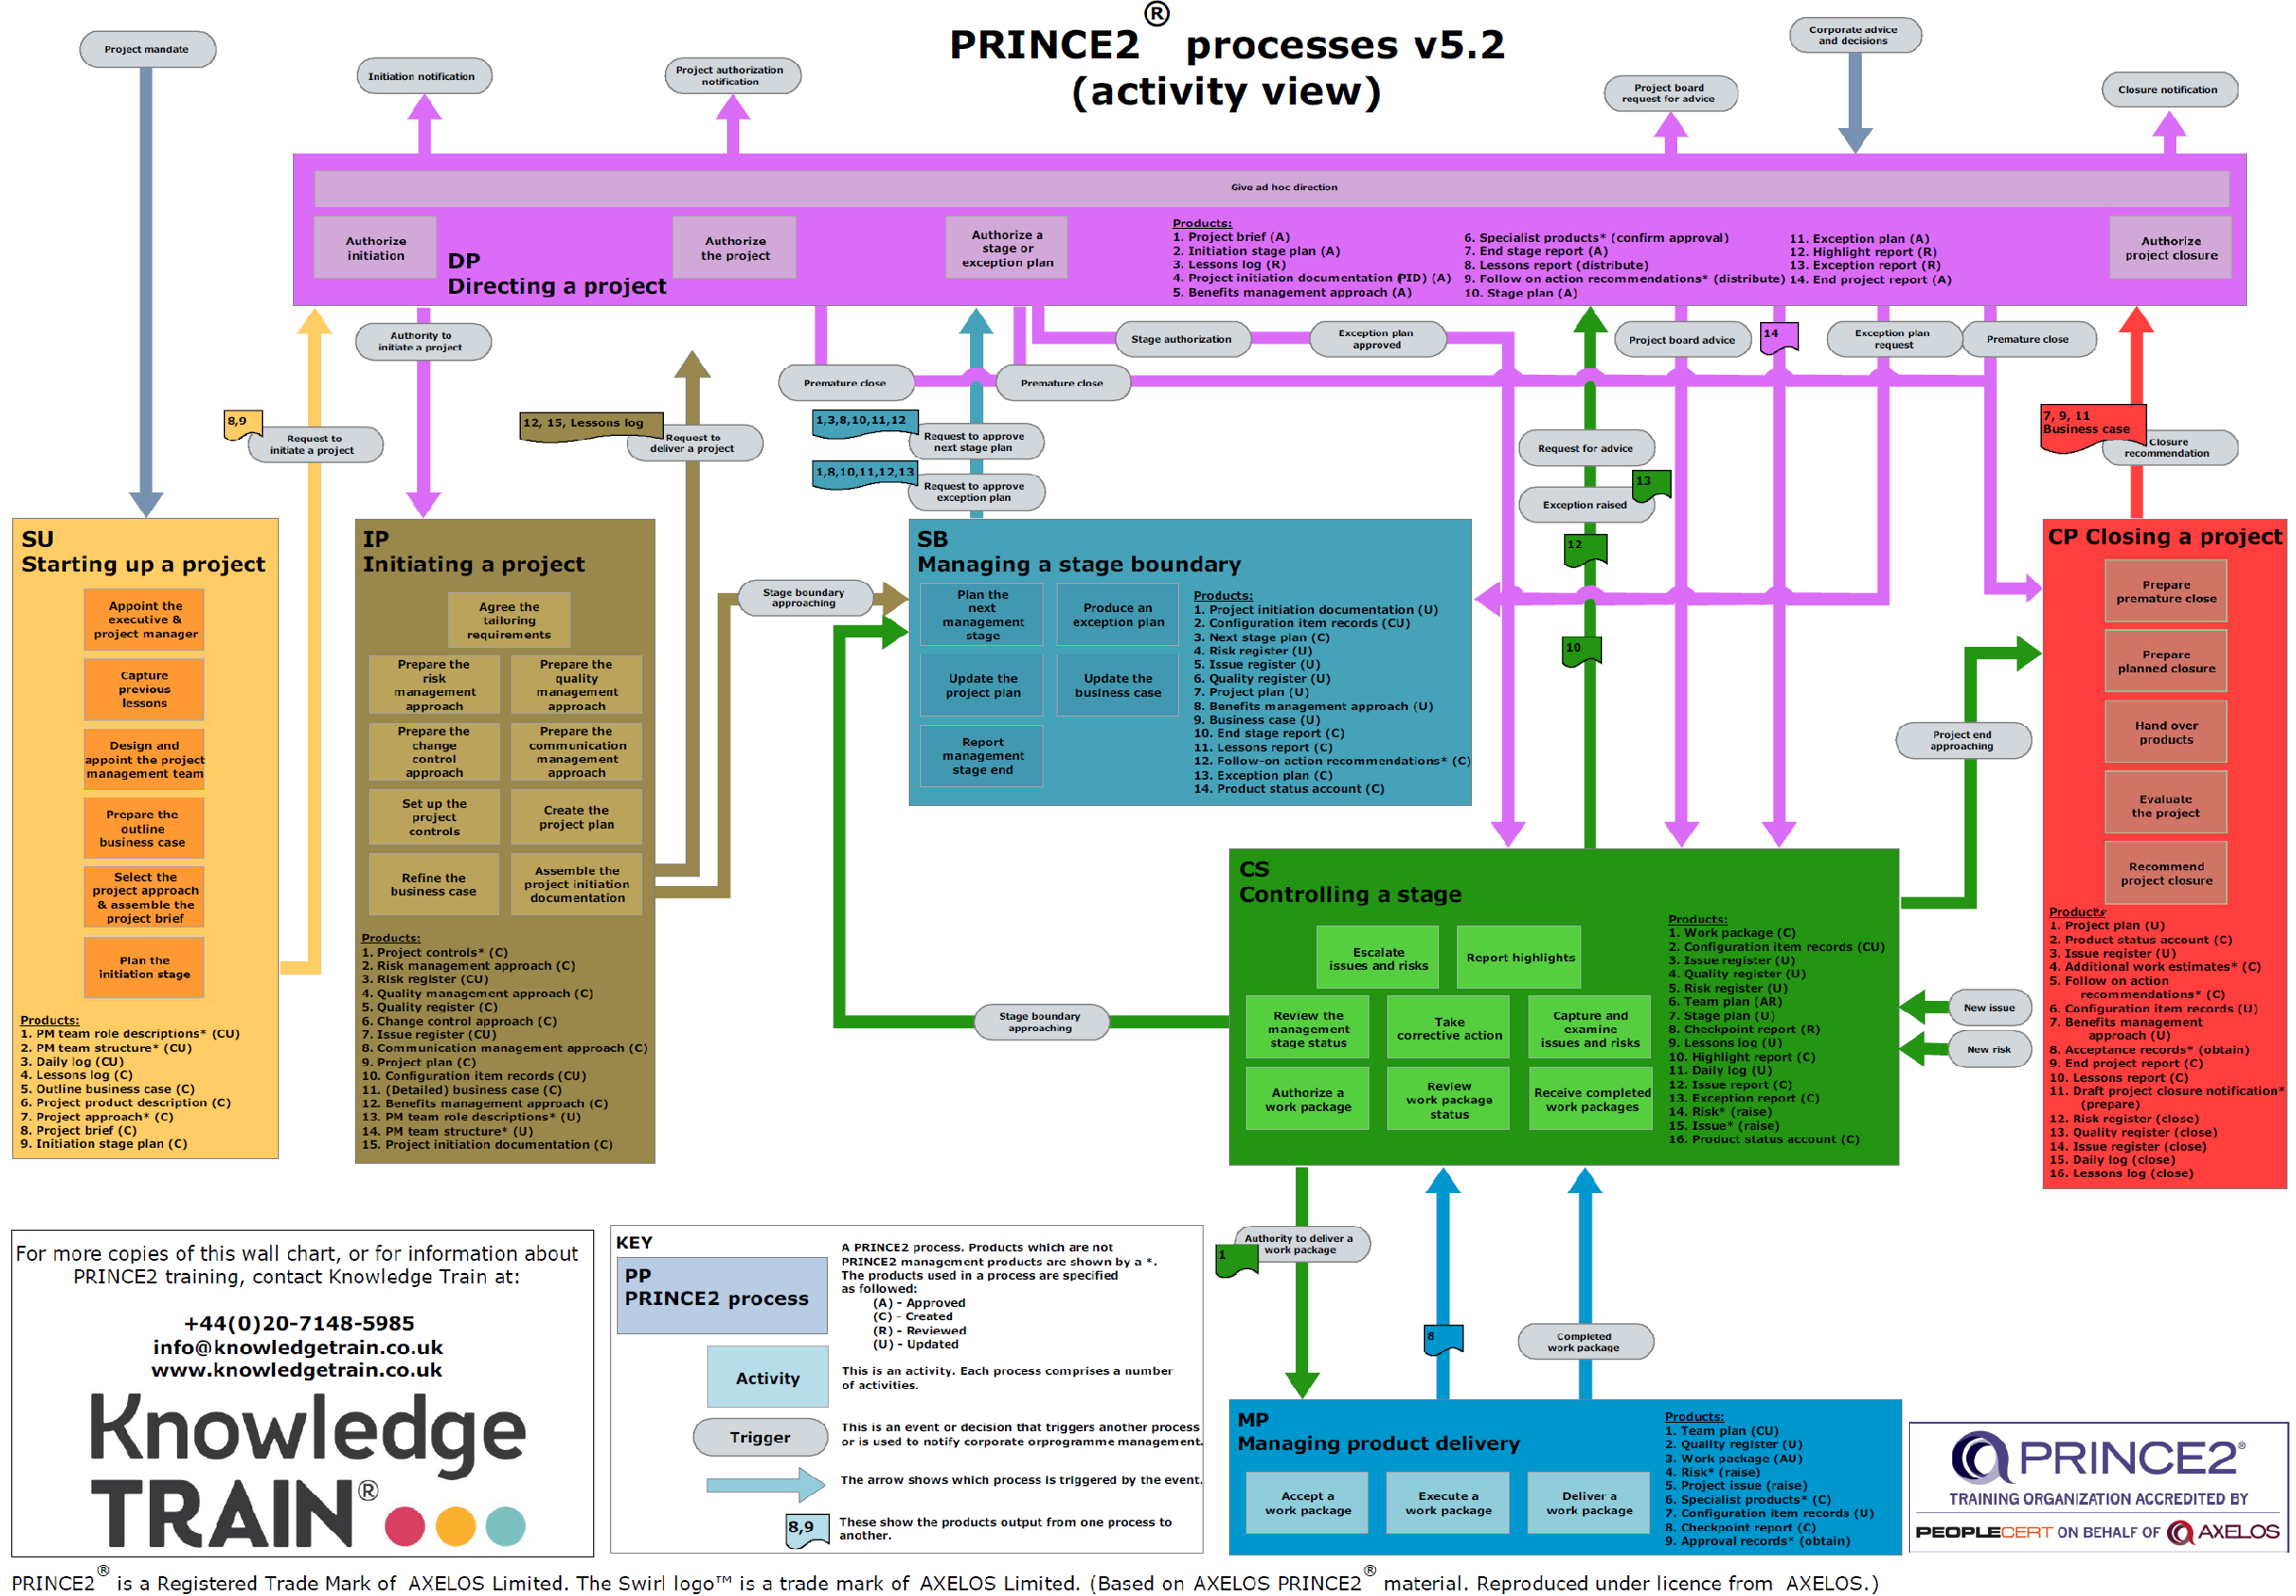 prince2-processes-activities-v5.2